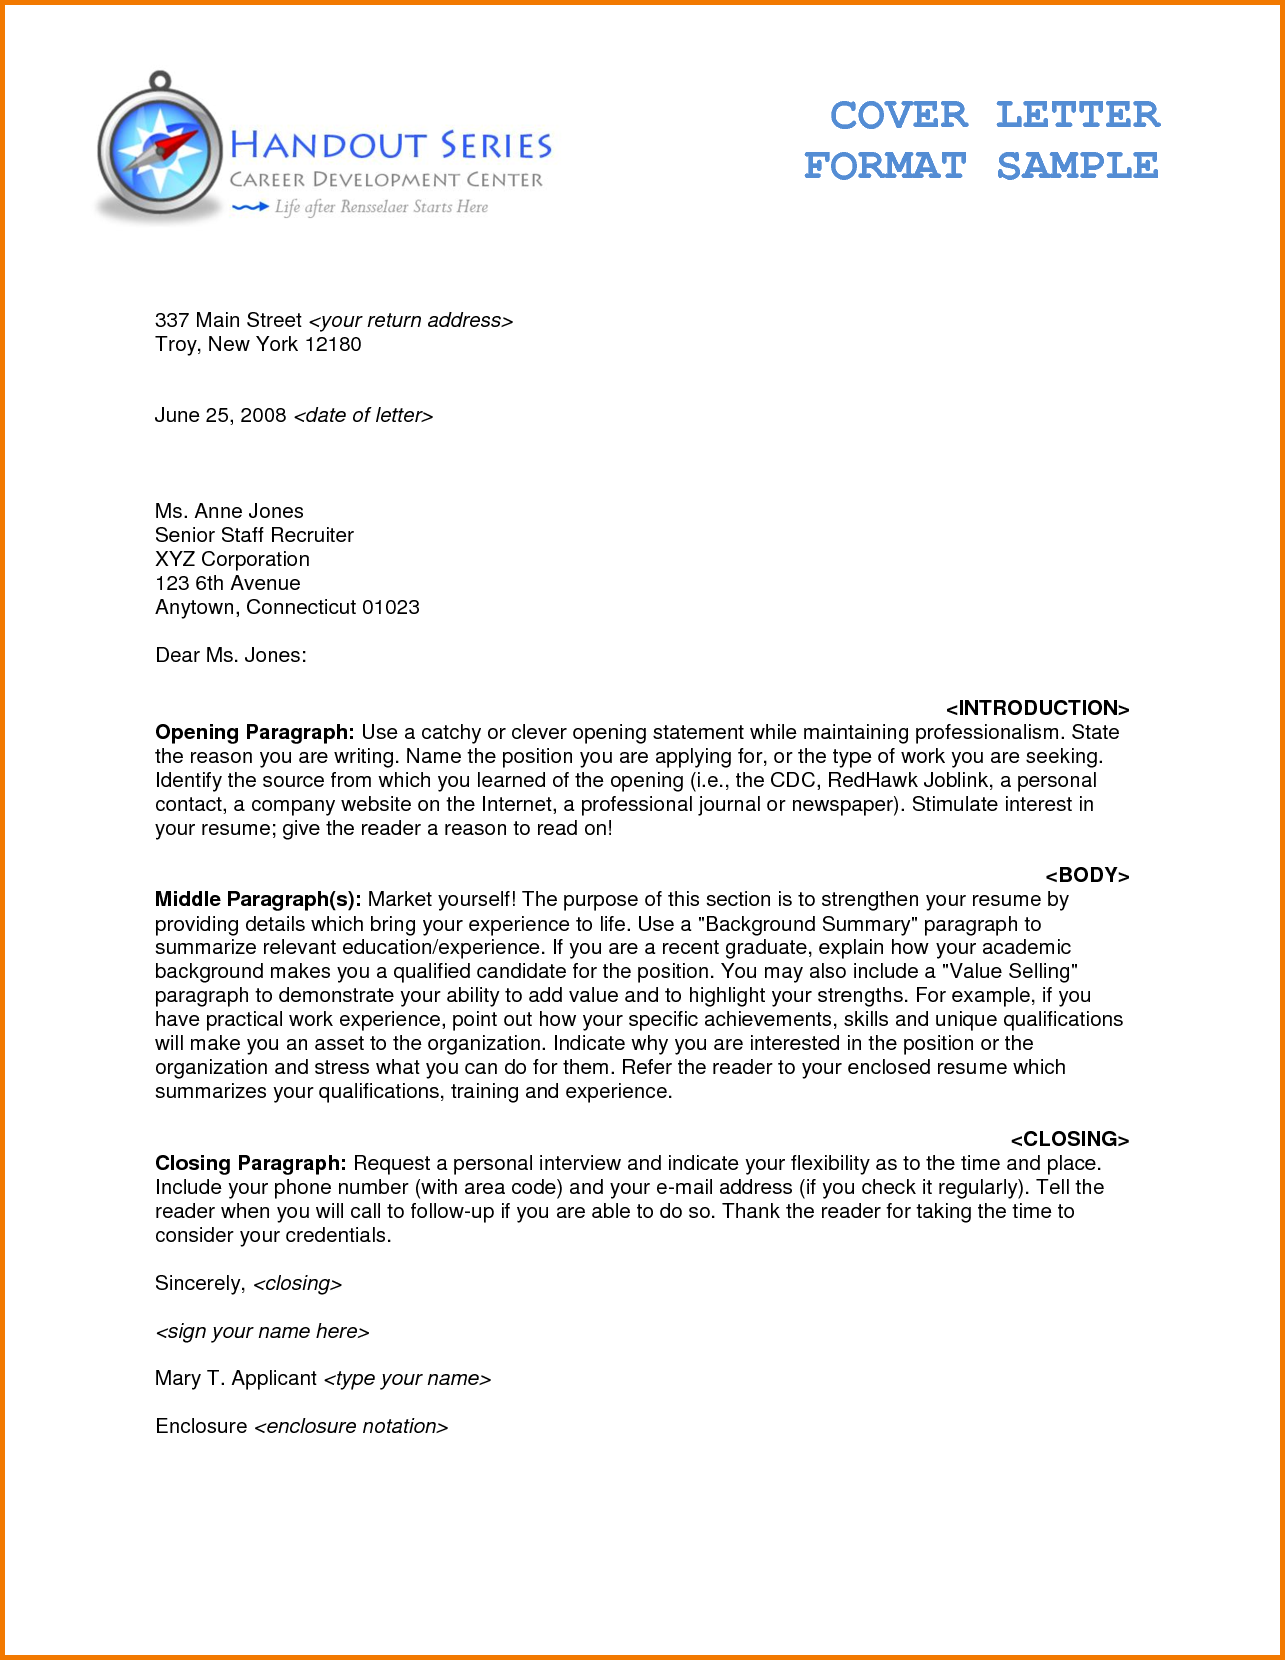 Formal letter format writing cbse class sample how write business formal letter format writing cbse class sample how write business official spiritdancerdesigns Choice Image